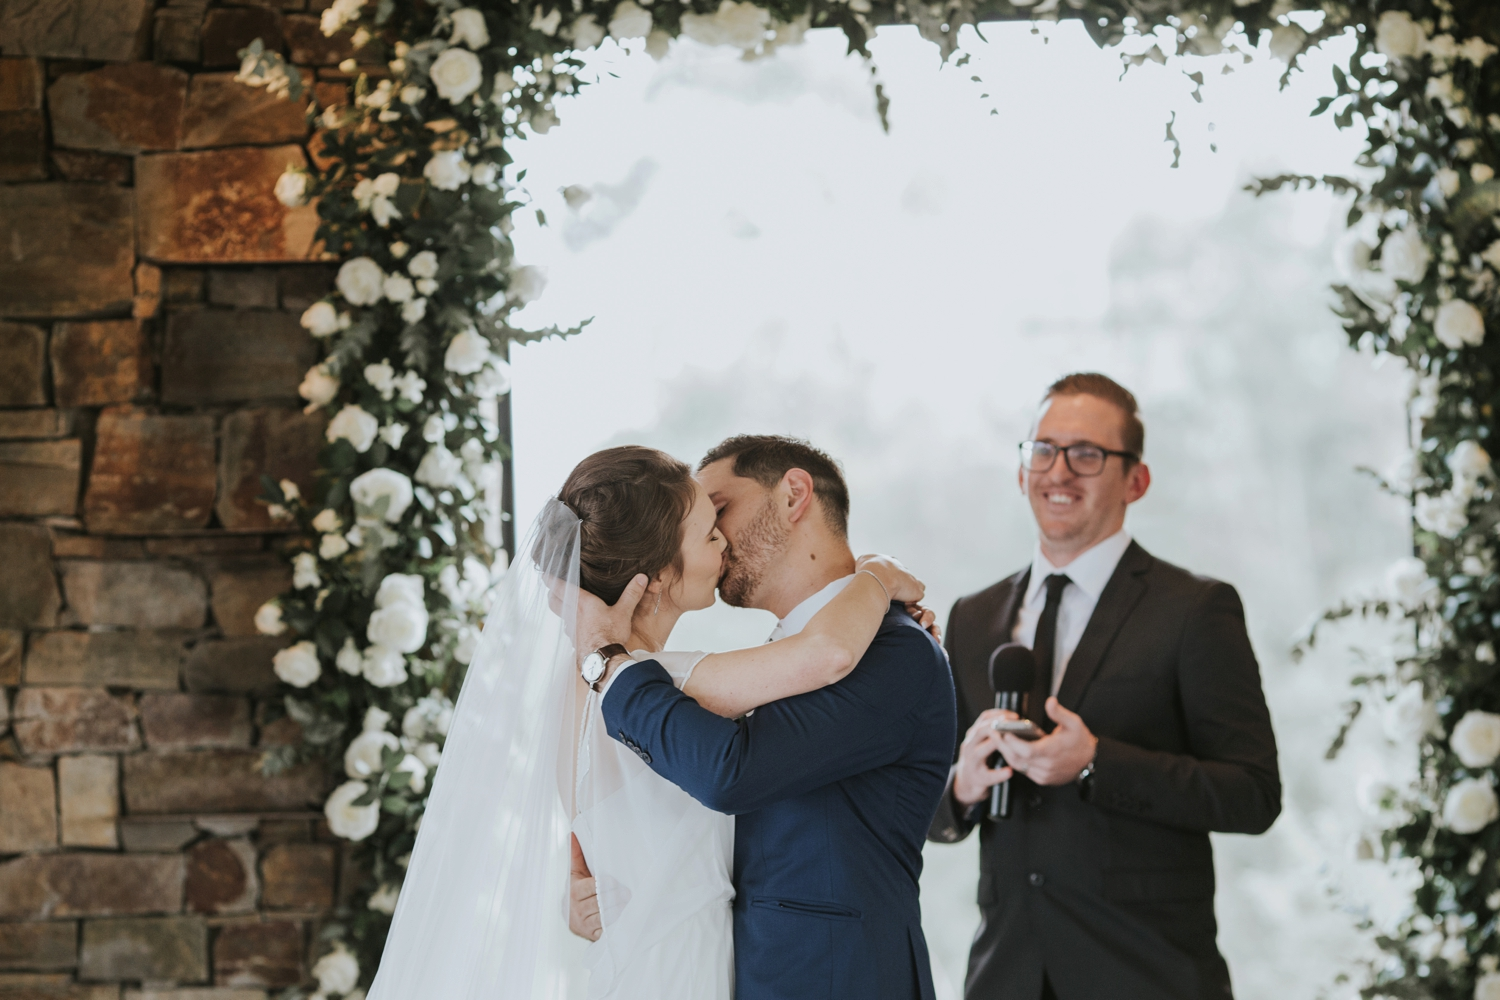 First kiss at Vancouver wedding ceremony surrounded by white roses